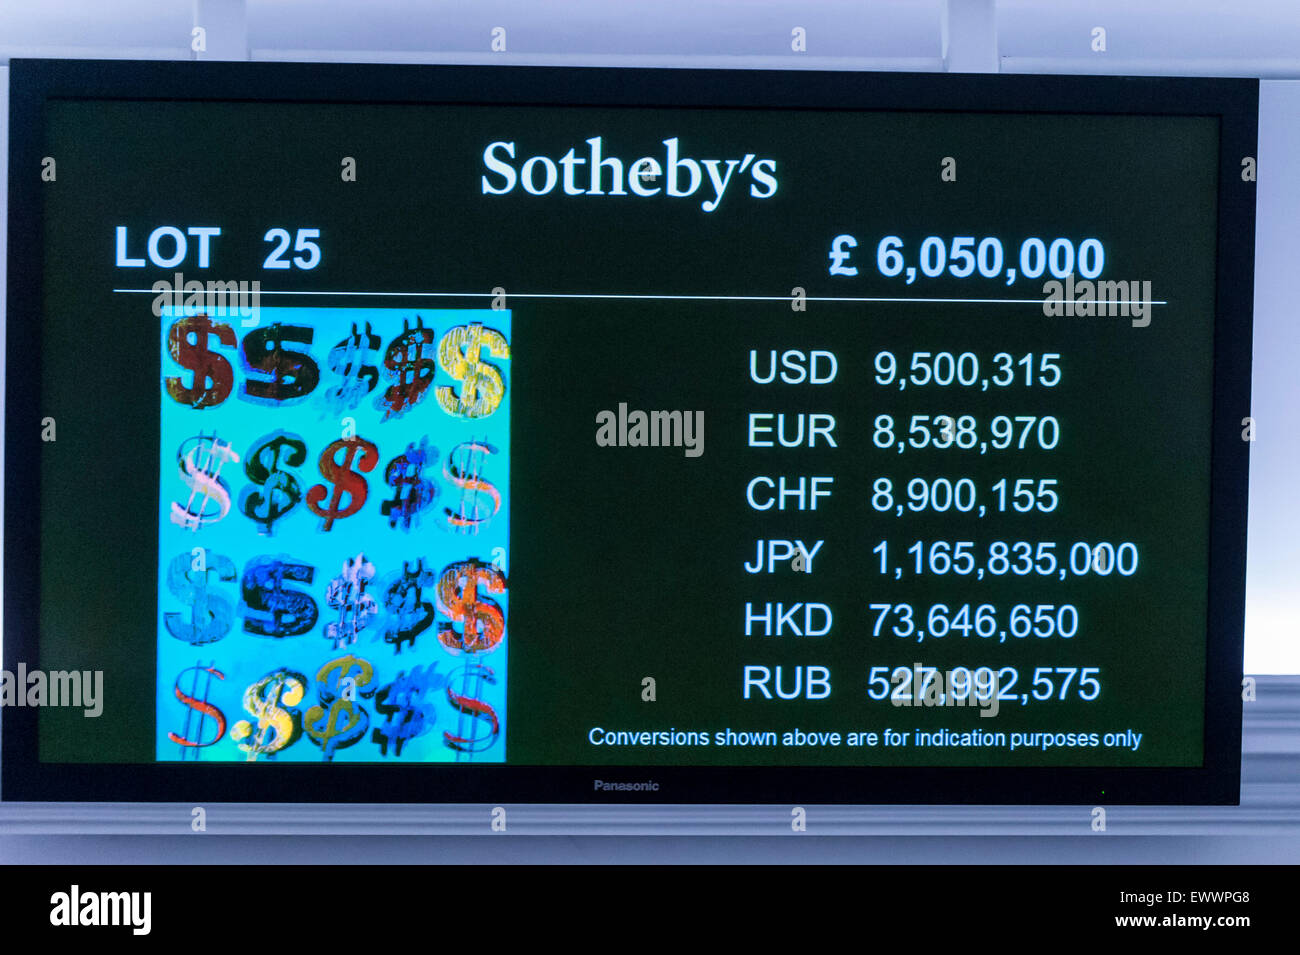 London, UK. 1 July 2015. An LCD monitor shows Andy Warhol's 'Dollar Signs' which sold for a hammer price - Stock Image